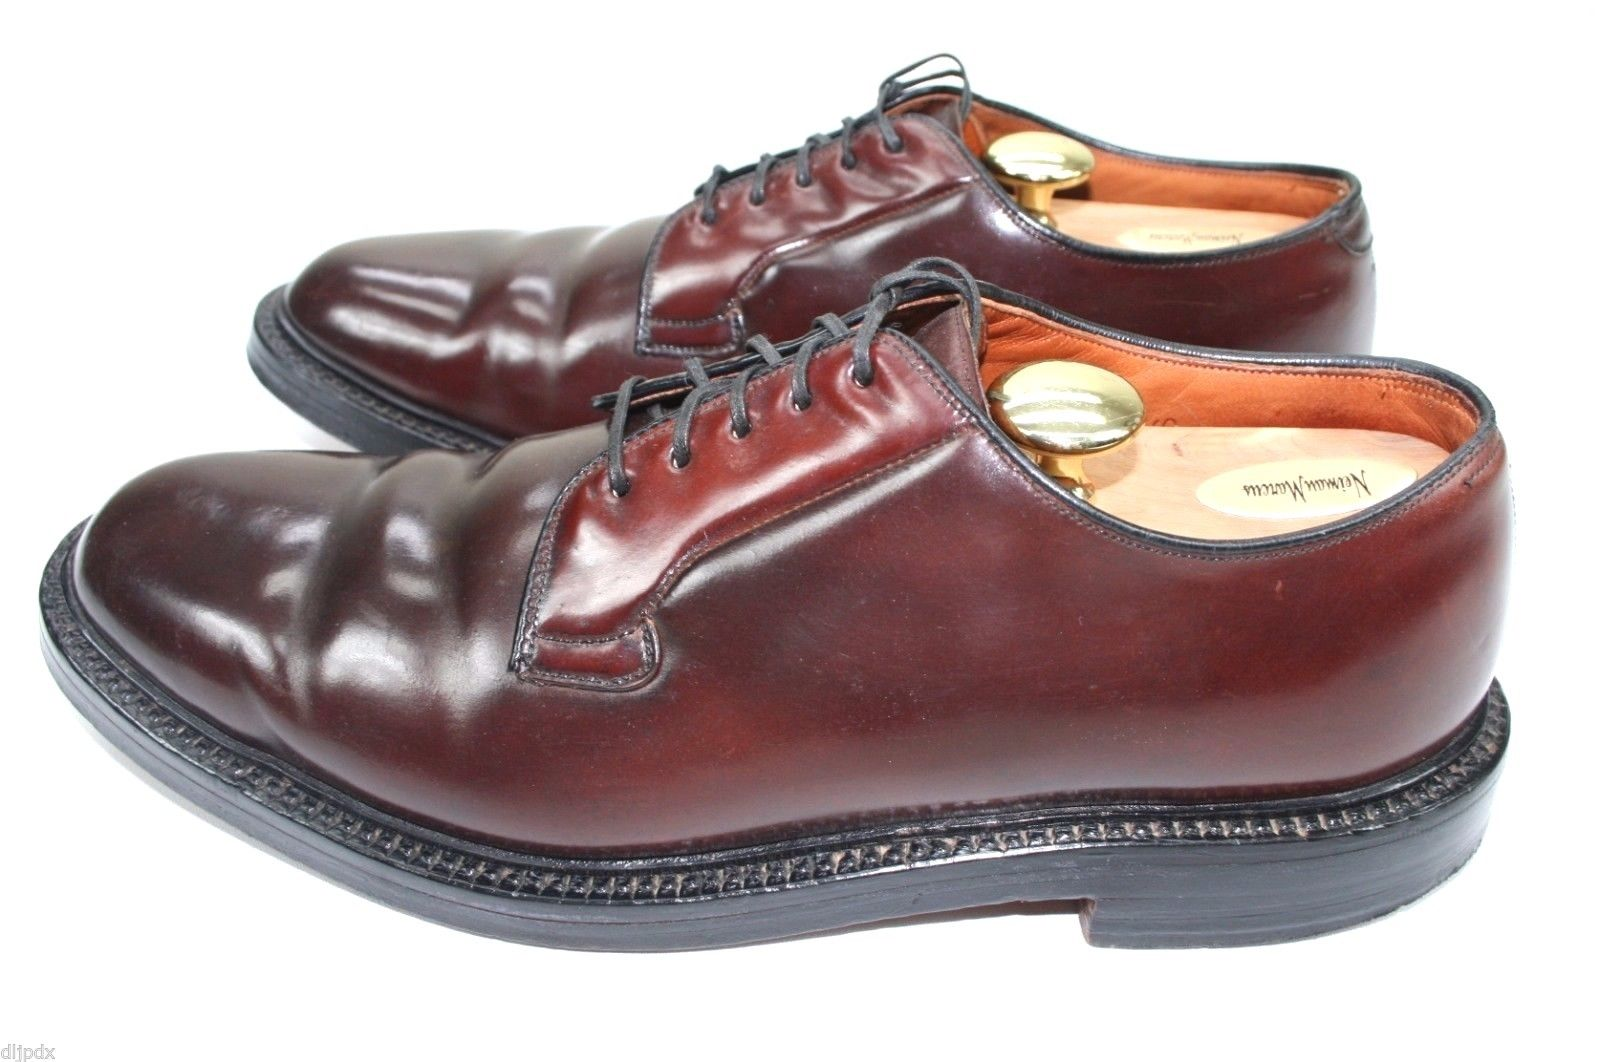 Nettleton Shell Cordovan 0199 Traditionals